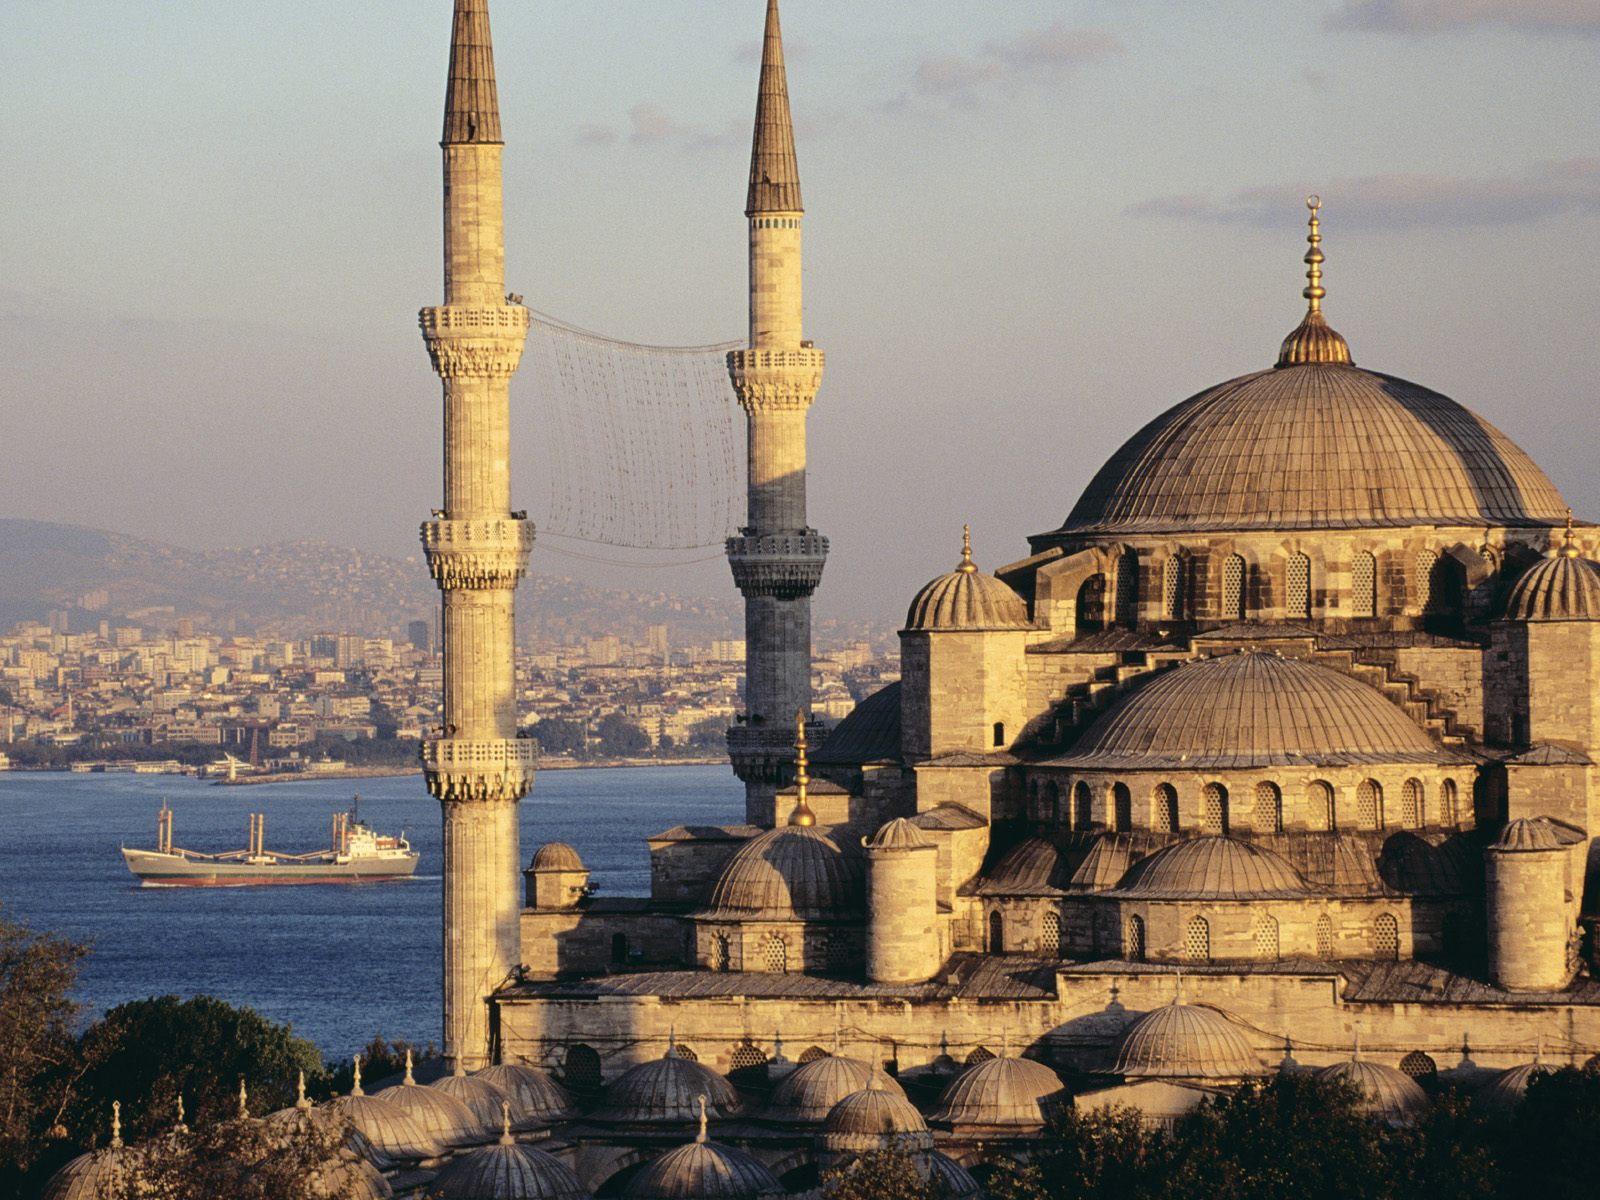 http://3.bp.blogspot.com/_b-YuSdvMmaQ/Swl0kSPWRhI/AAAAAAAADmA/NuLSxg4et4Y/s1600/Blue+Mosque+and+the+Bosphorus,+Istanbul,+Turkey.jpg